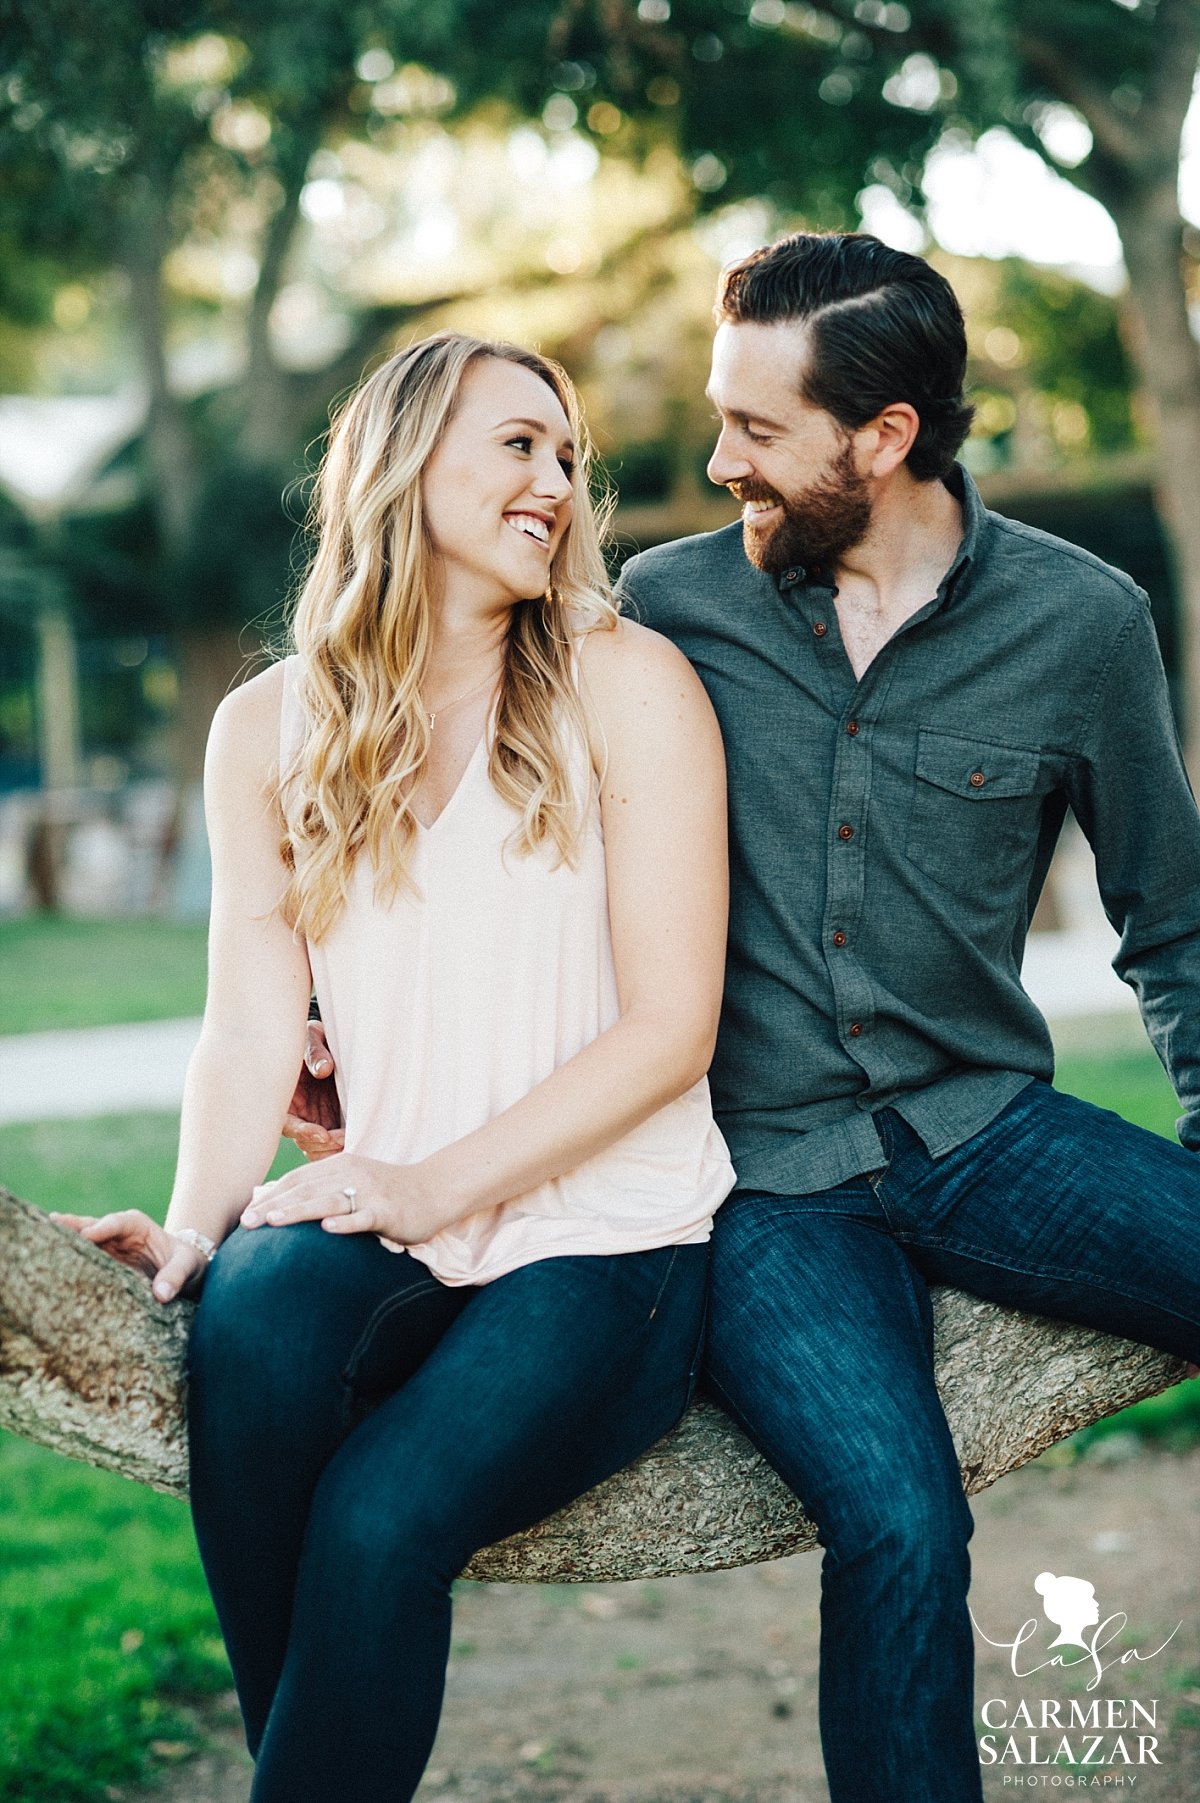 Outdoor Davis engagement portraits - Carmen Salazar